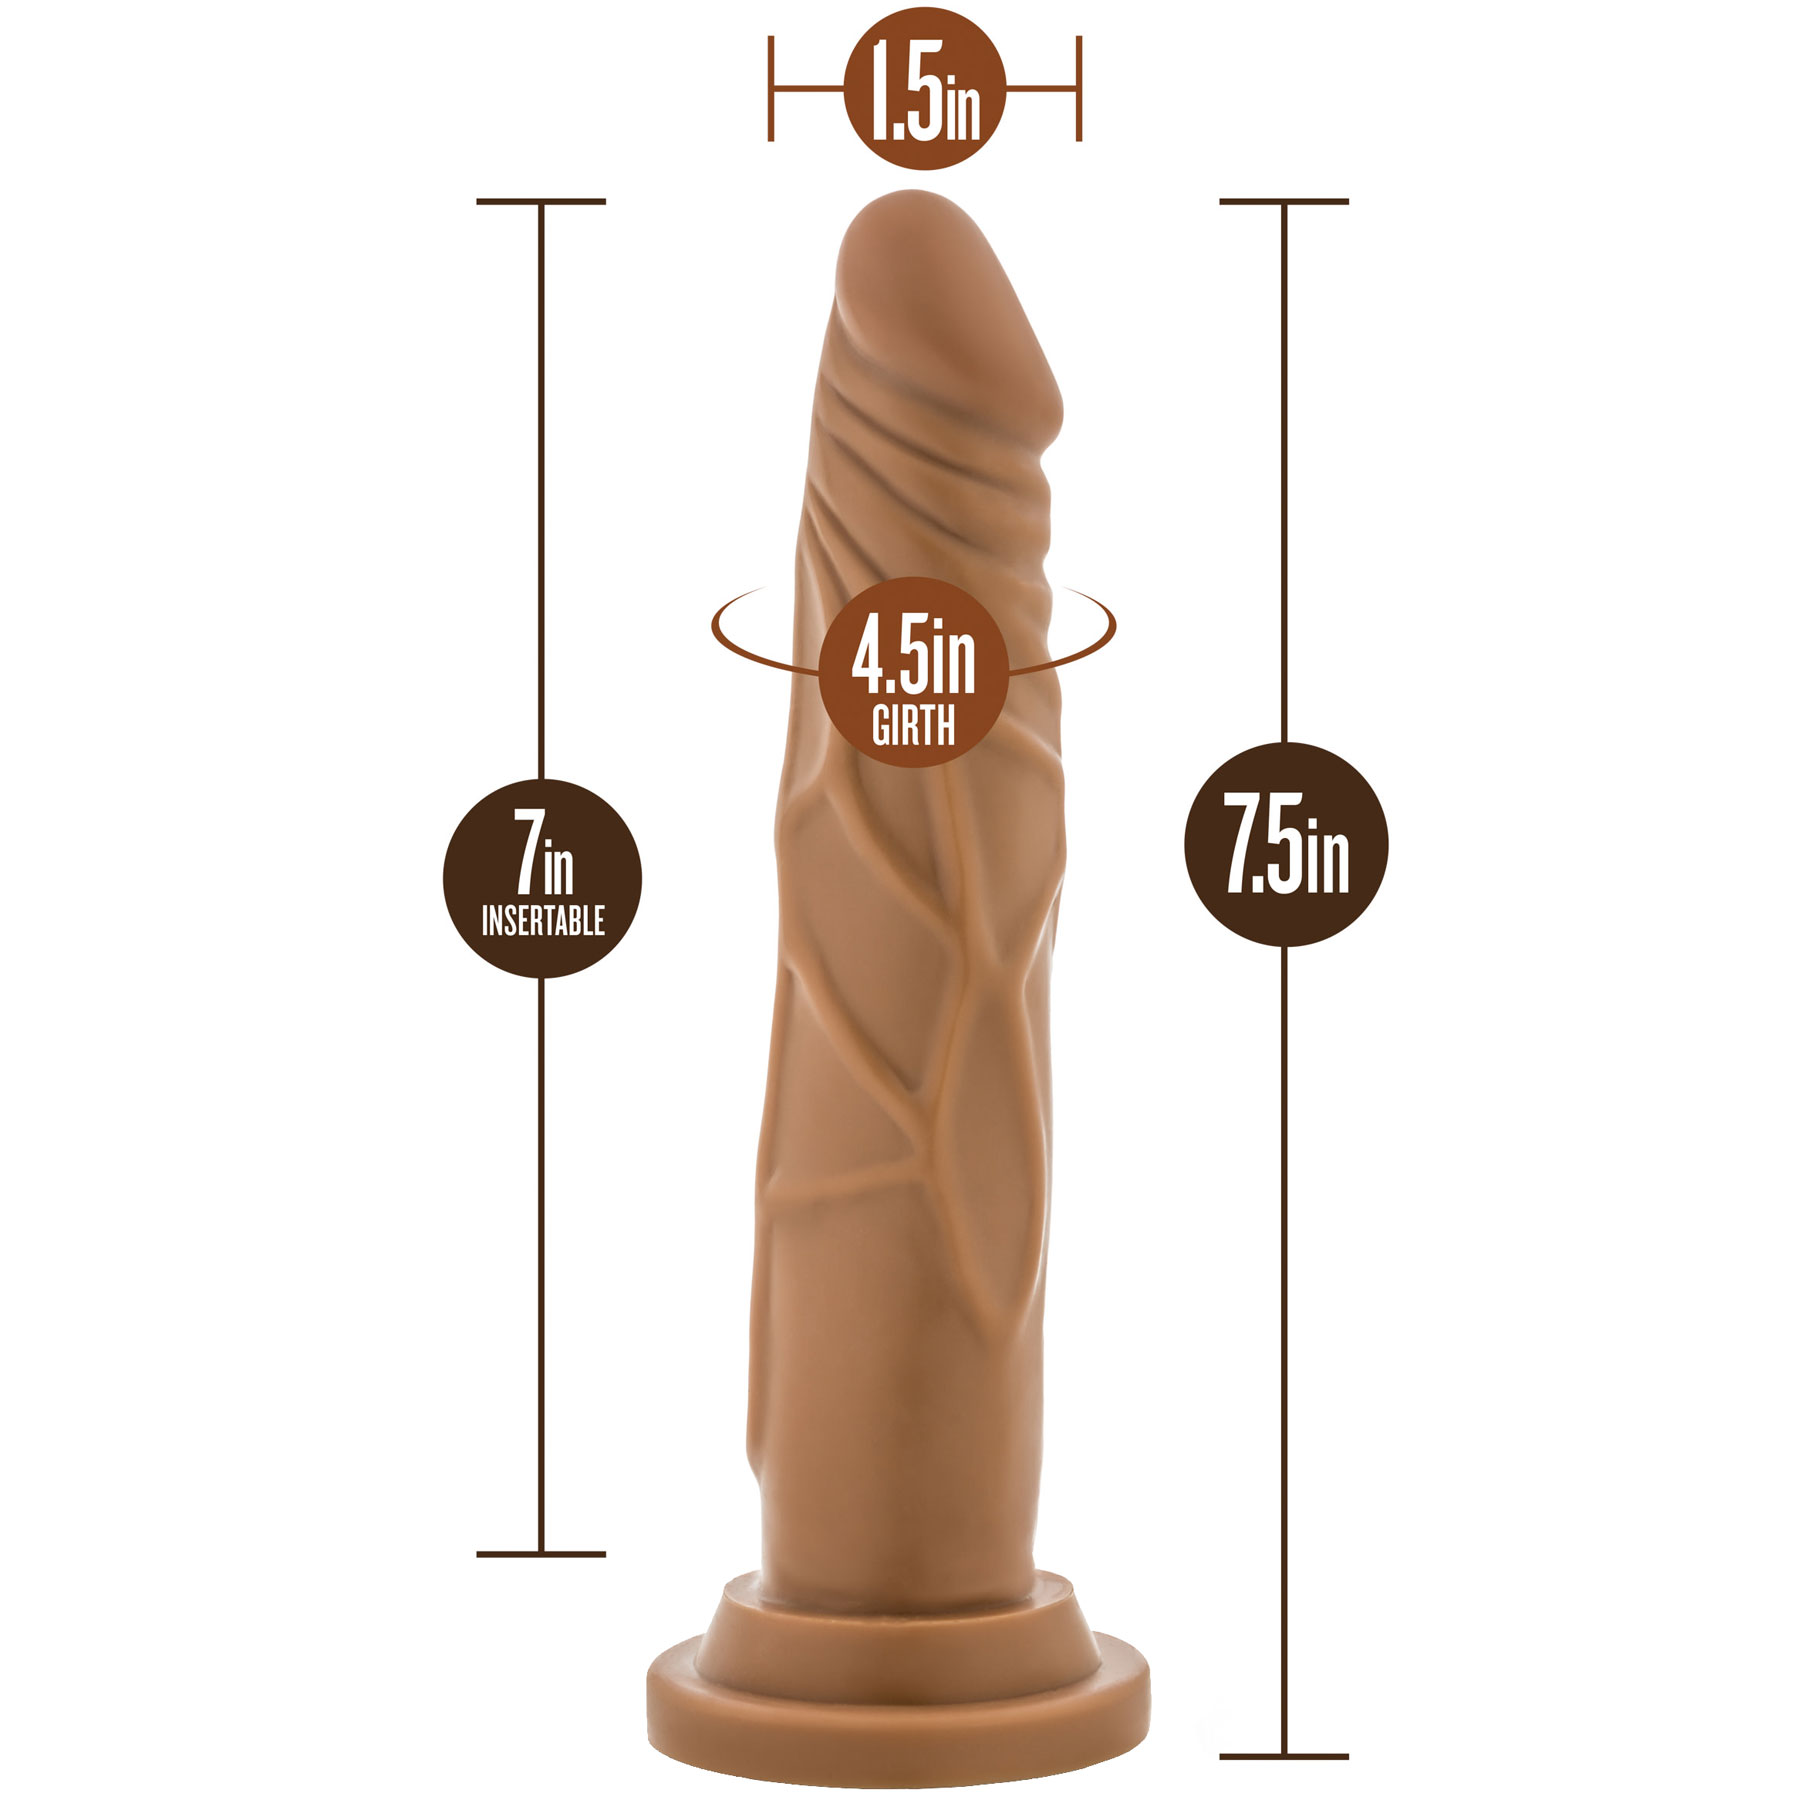 Silicone Willy's 7.5 Inch Silicone Suction Cup Dildo - Measurements